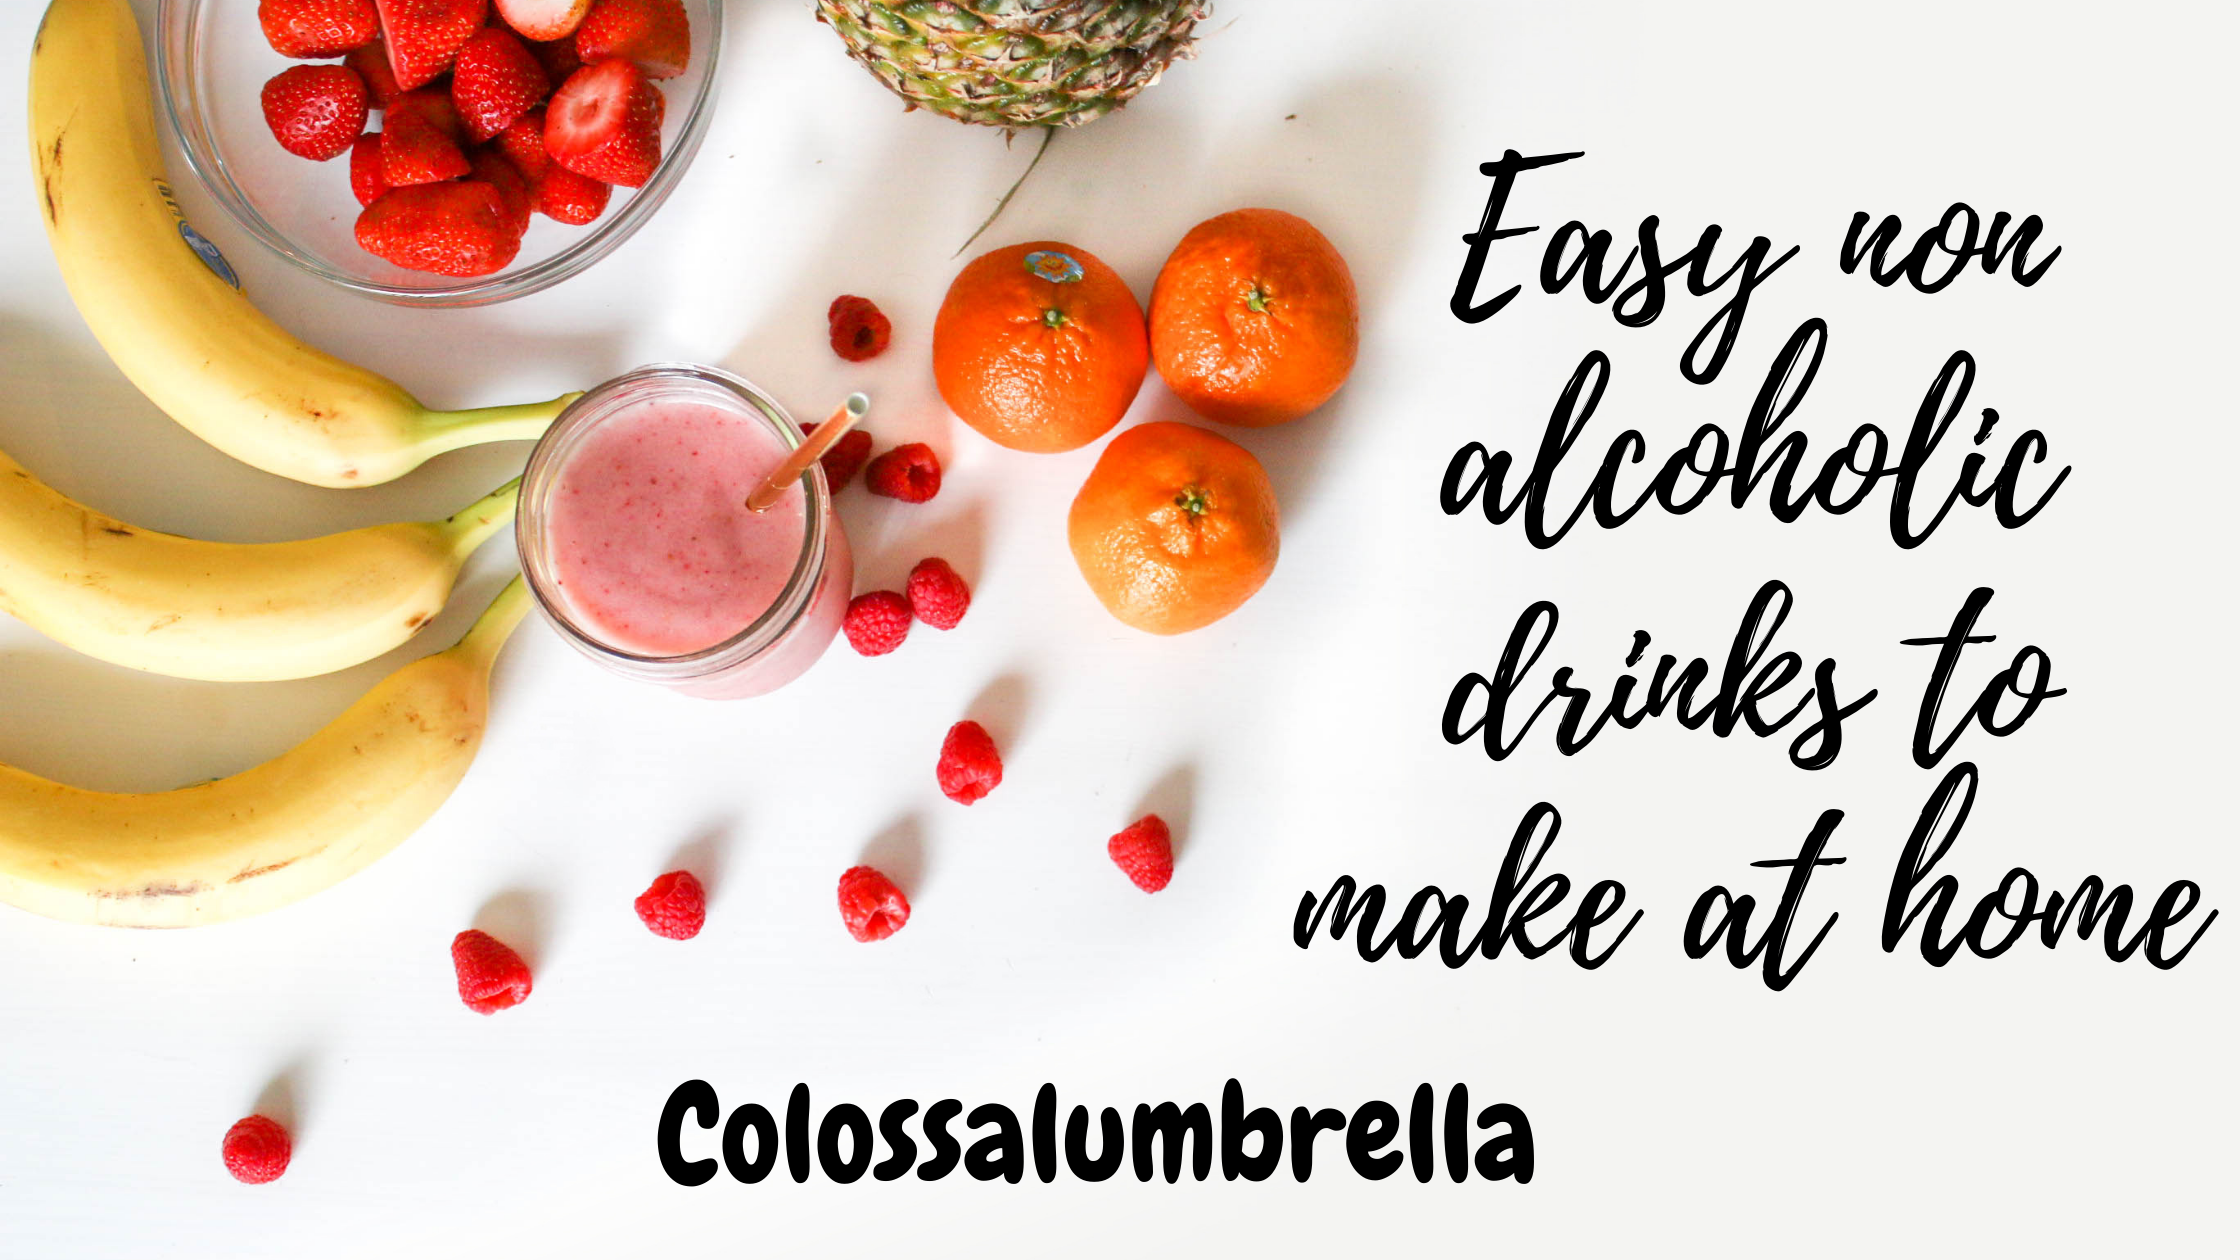 Easy non alcoholic drinks to make at home